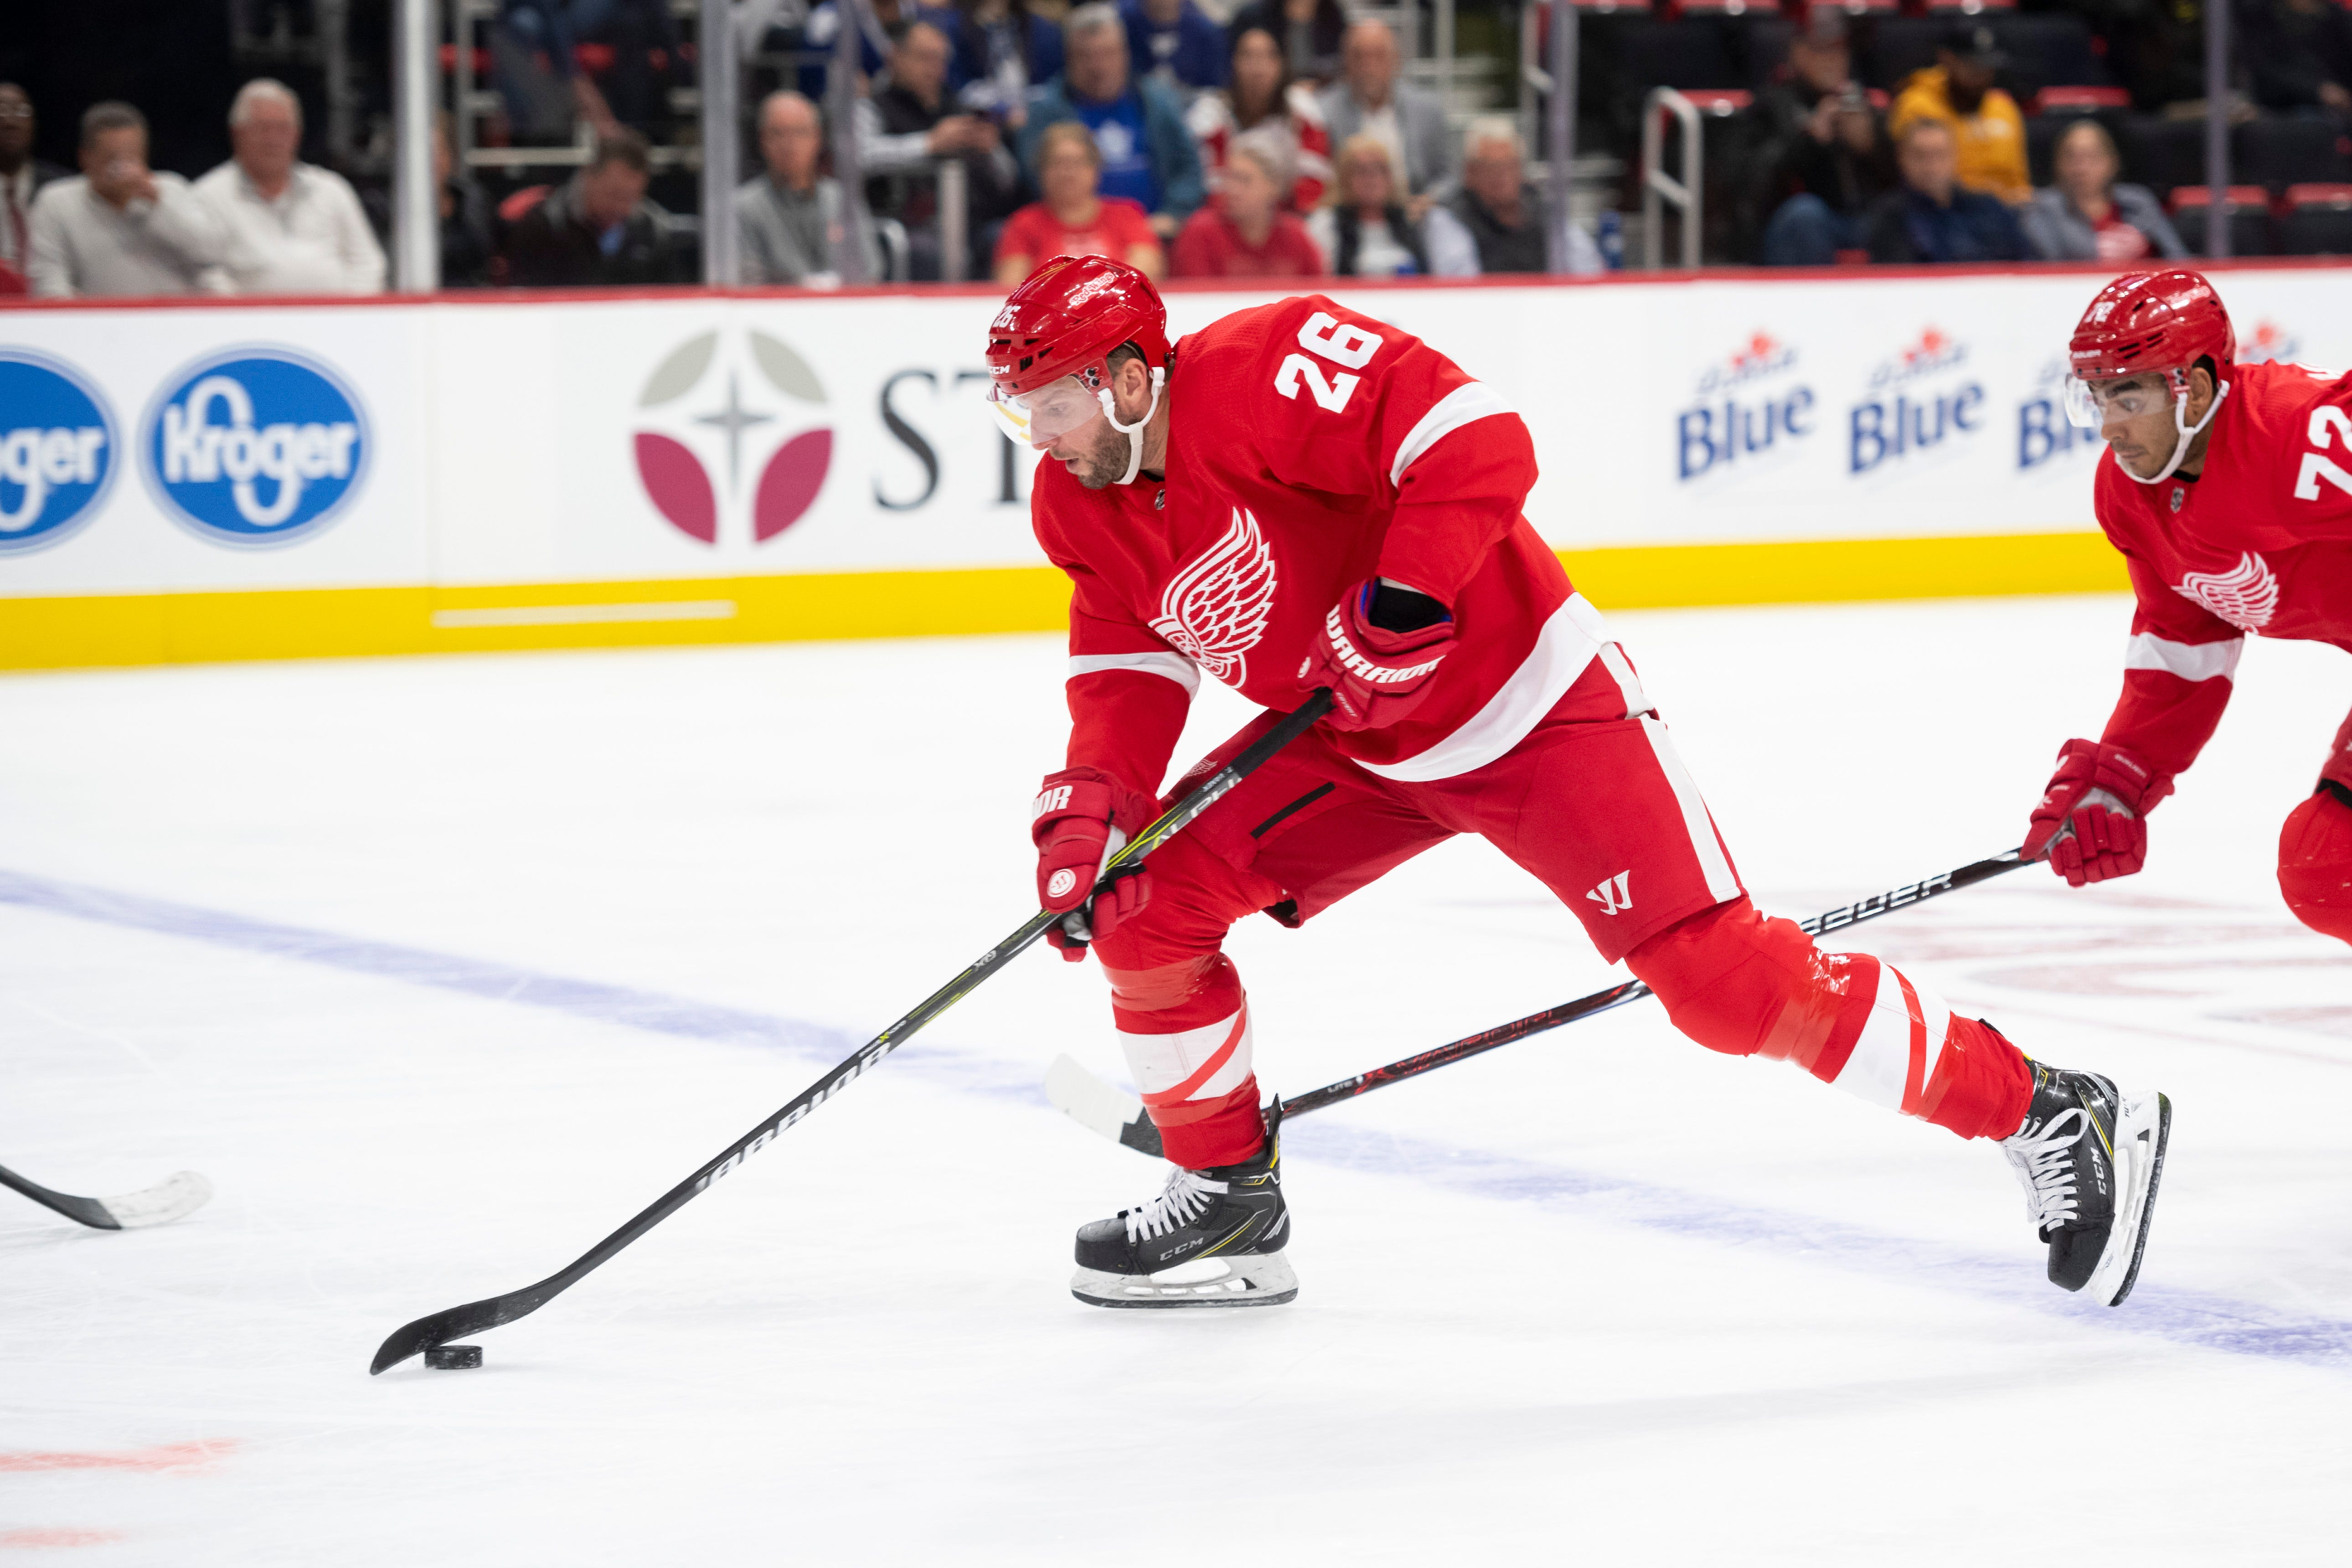 Detroit Red Wings' Thomas Vanek Finally Returns To Form After Injury